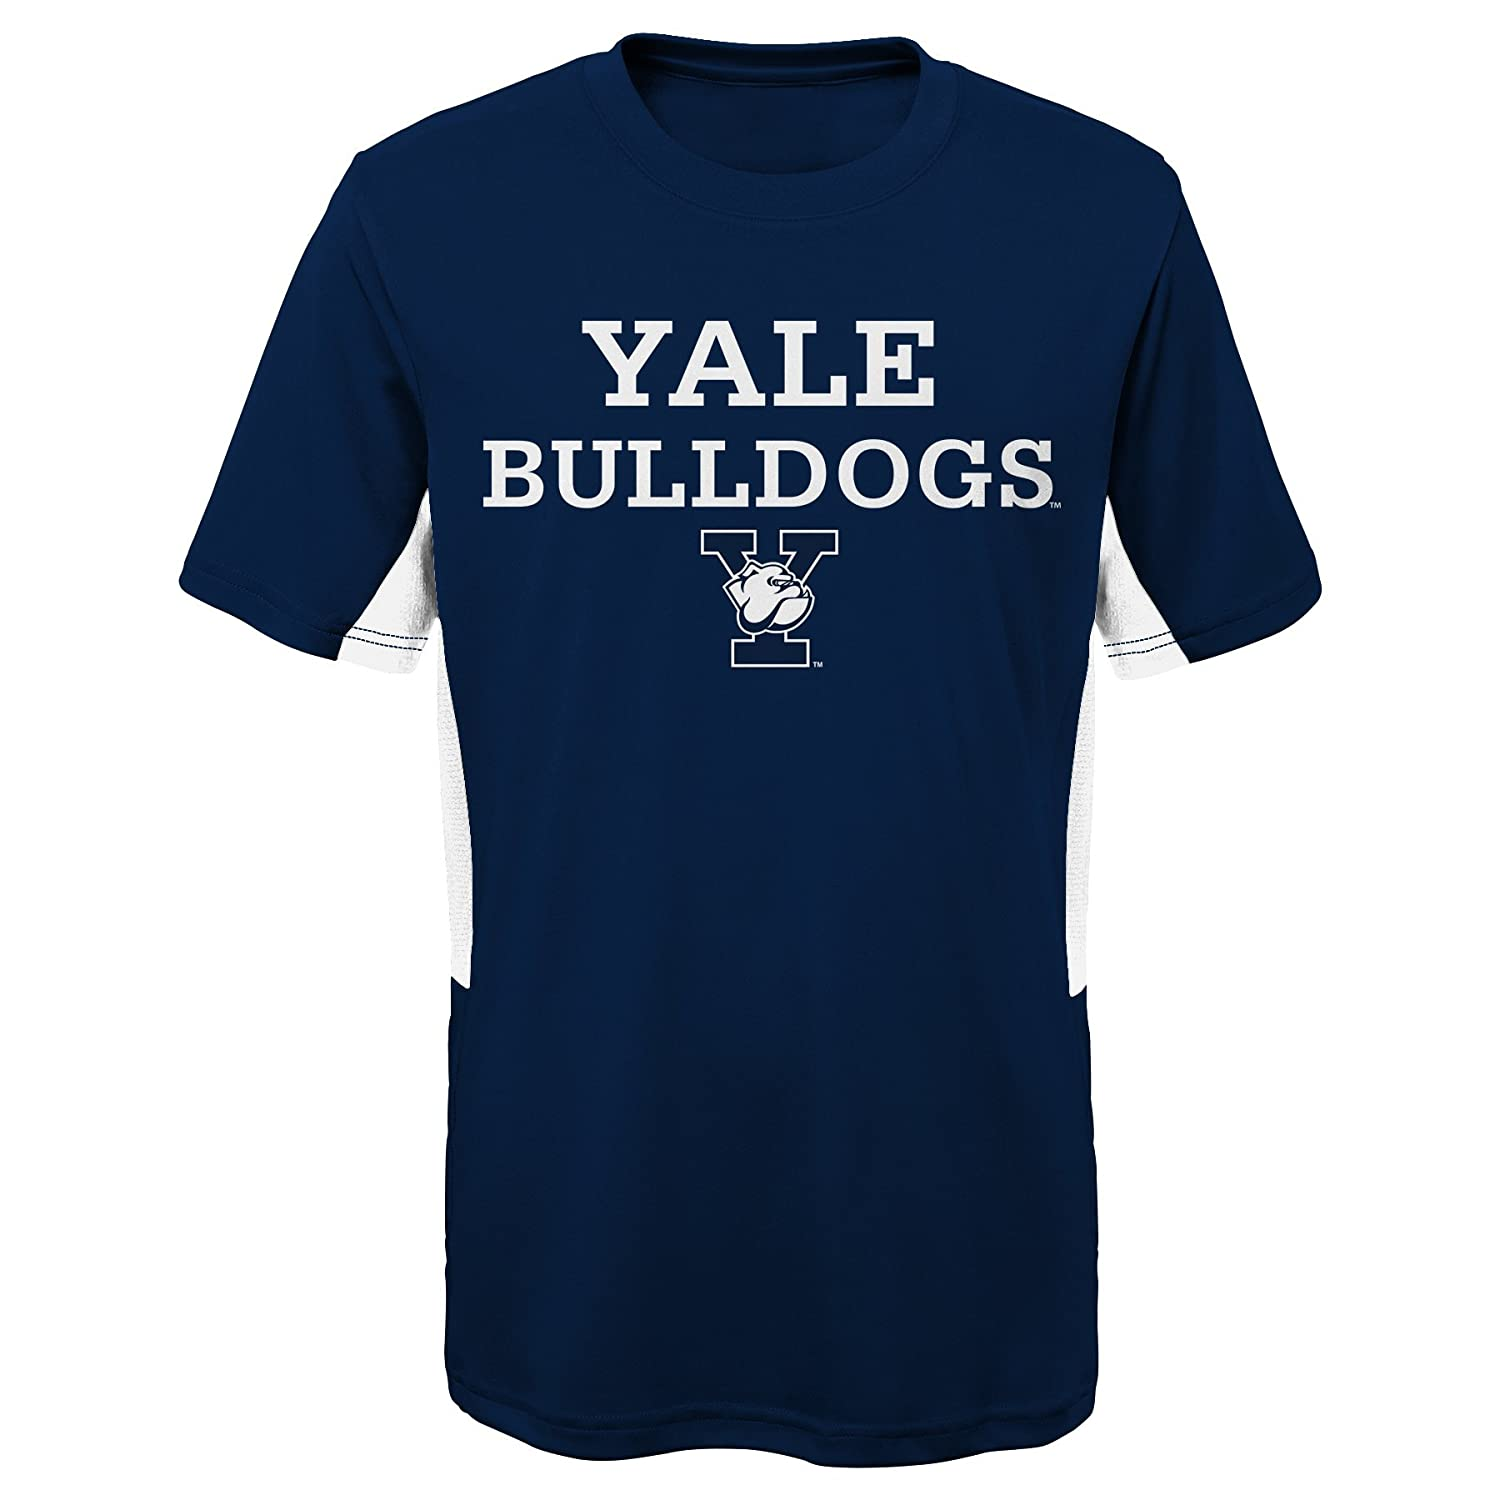 Youth X-Large NCAA by Outerstuff NCAA Yale Bulldogs Youth Boys Mainframe: Short Sleeve Performance Top 18 Dark Navy